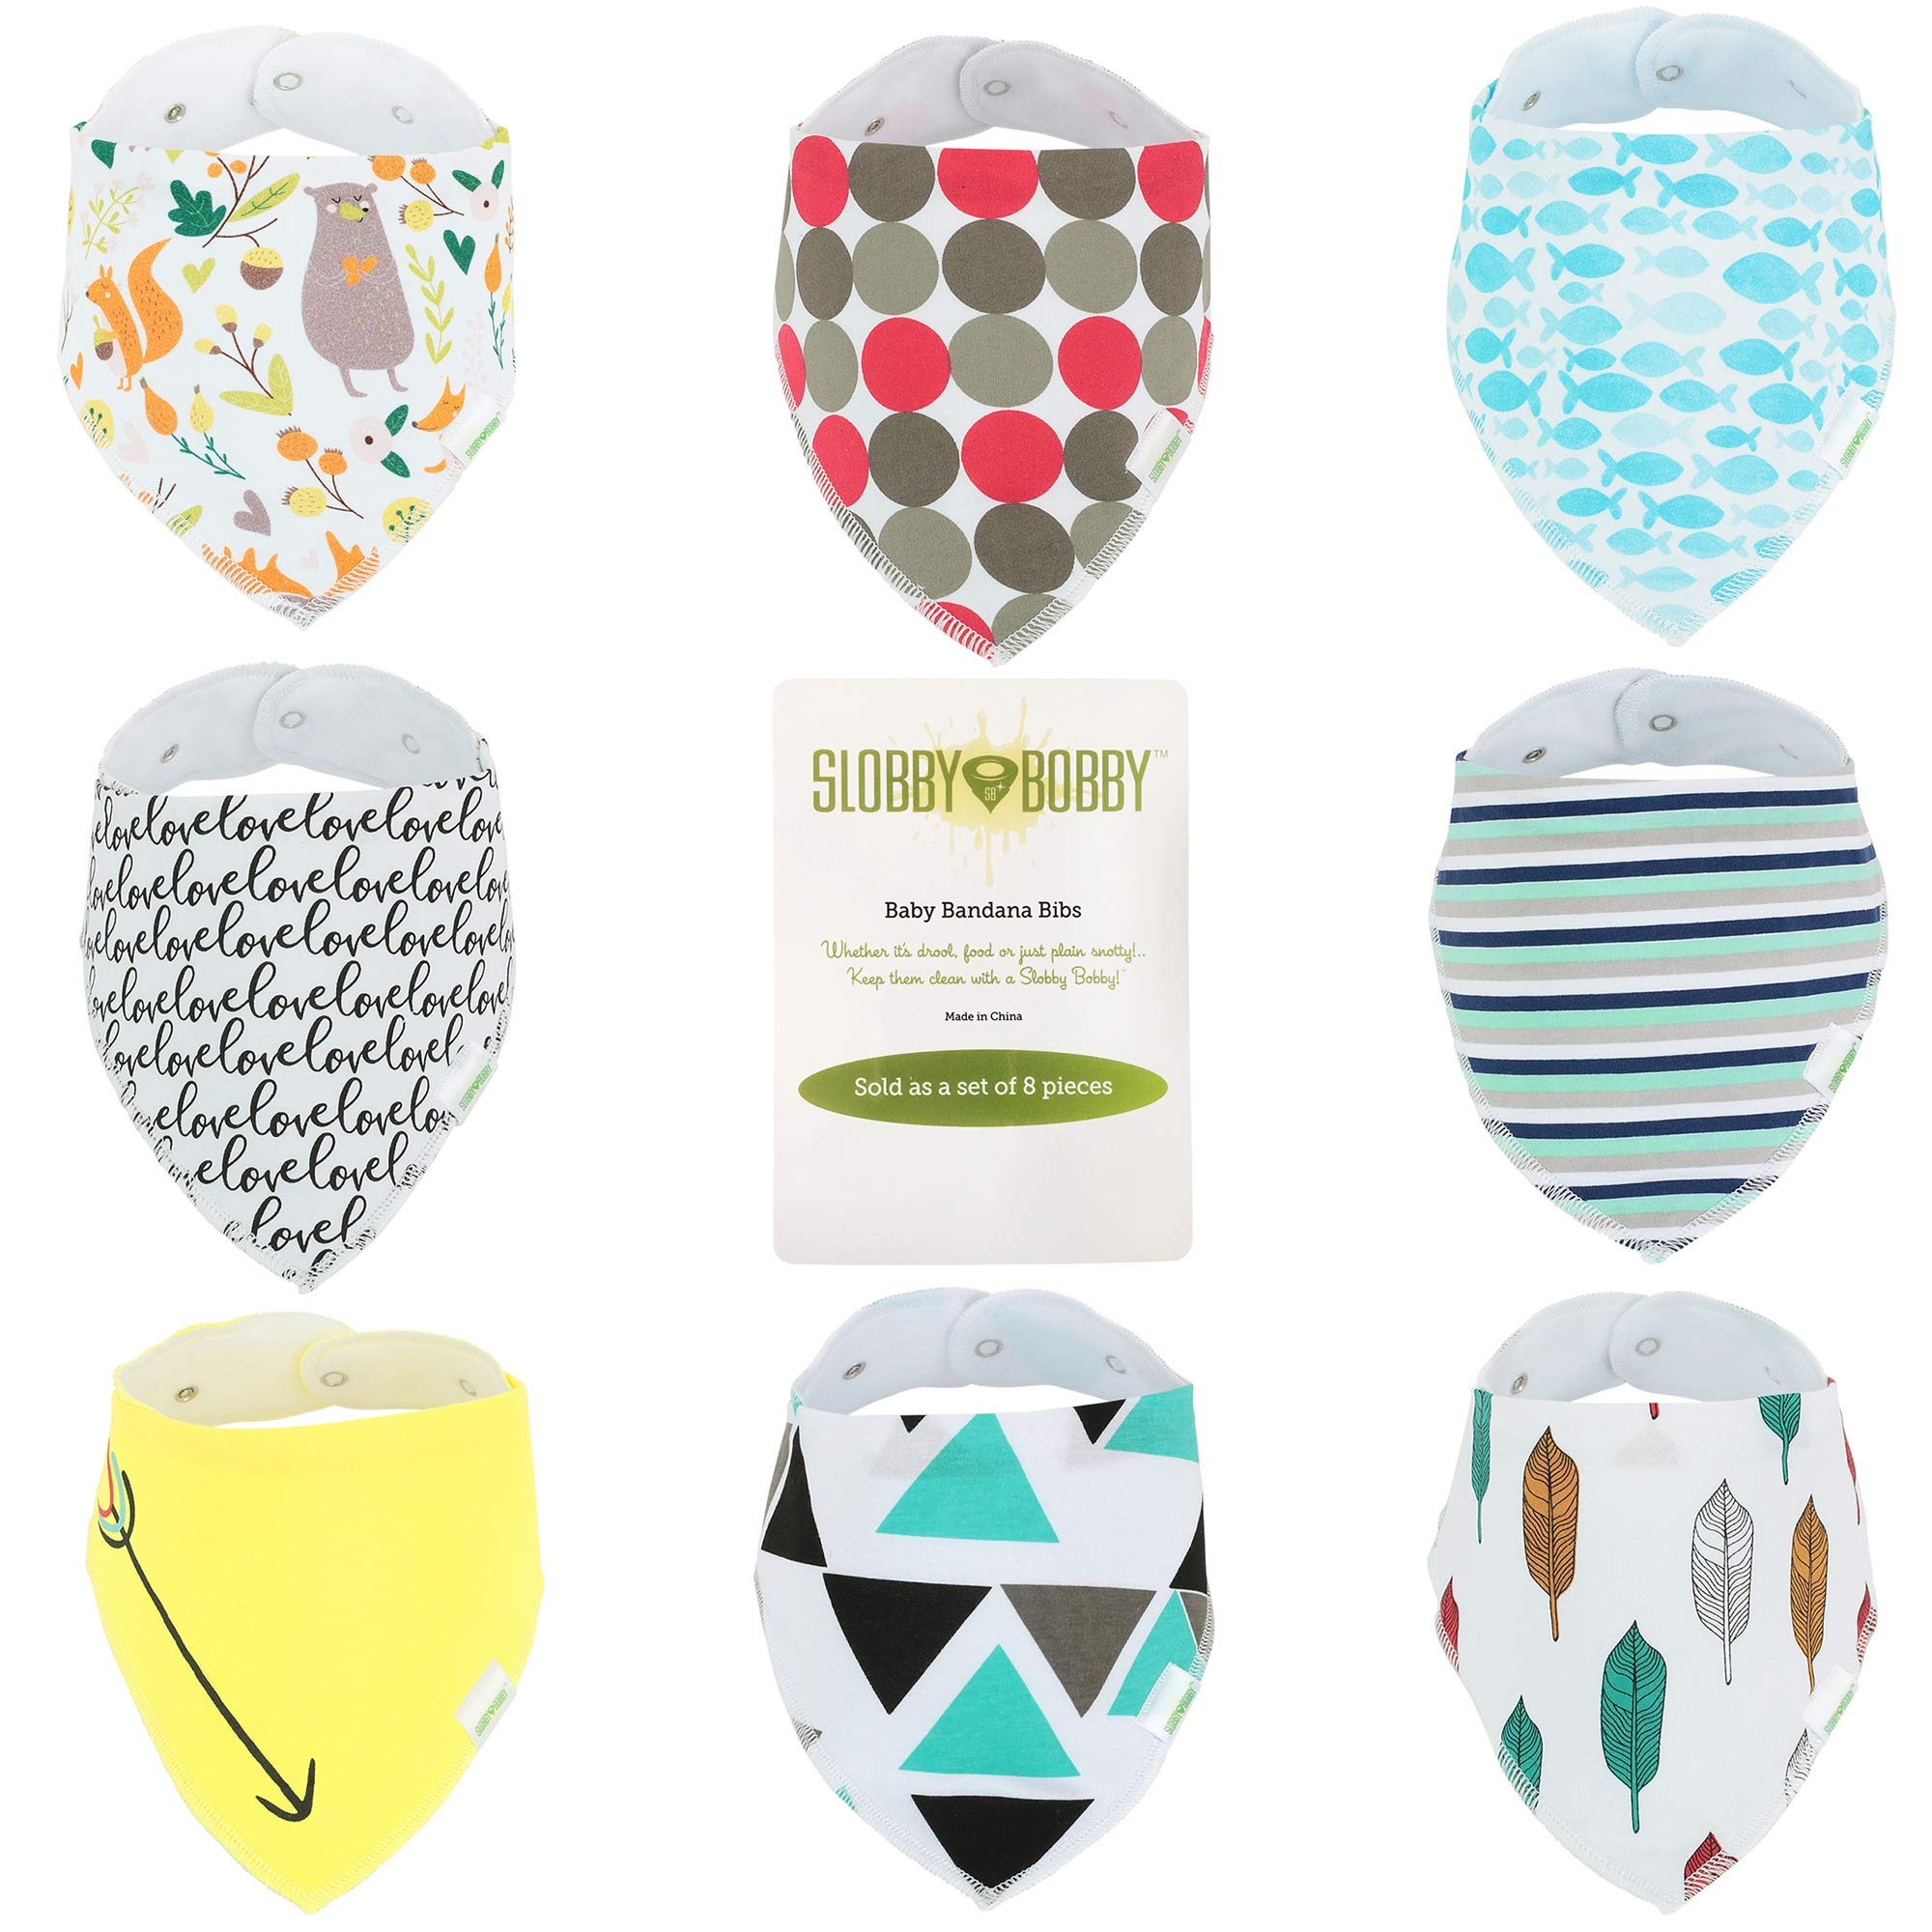 Baby Bandana Drool Bibs for Boys, 8 Pack Cotton Baby Scarf Bibs with Snaps | Ultra Absorbent for Drooling & Teething, Hypoallergenic & Adjustable | Great Baby Shower Gift